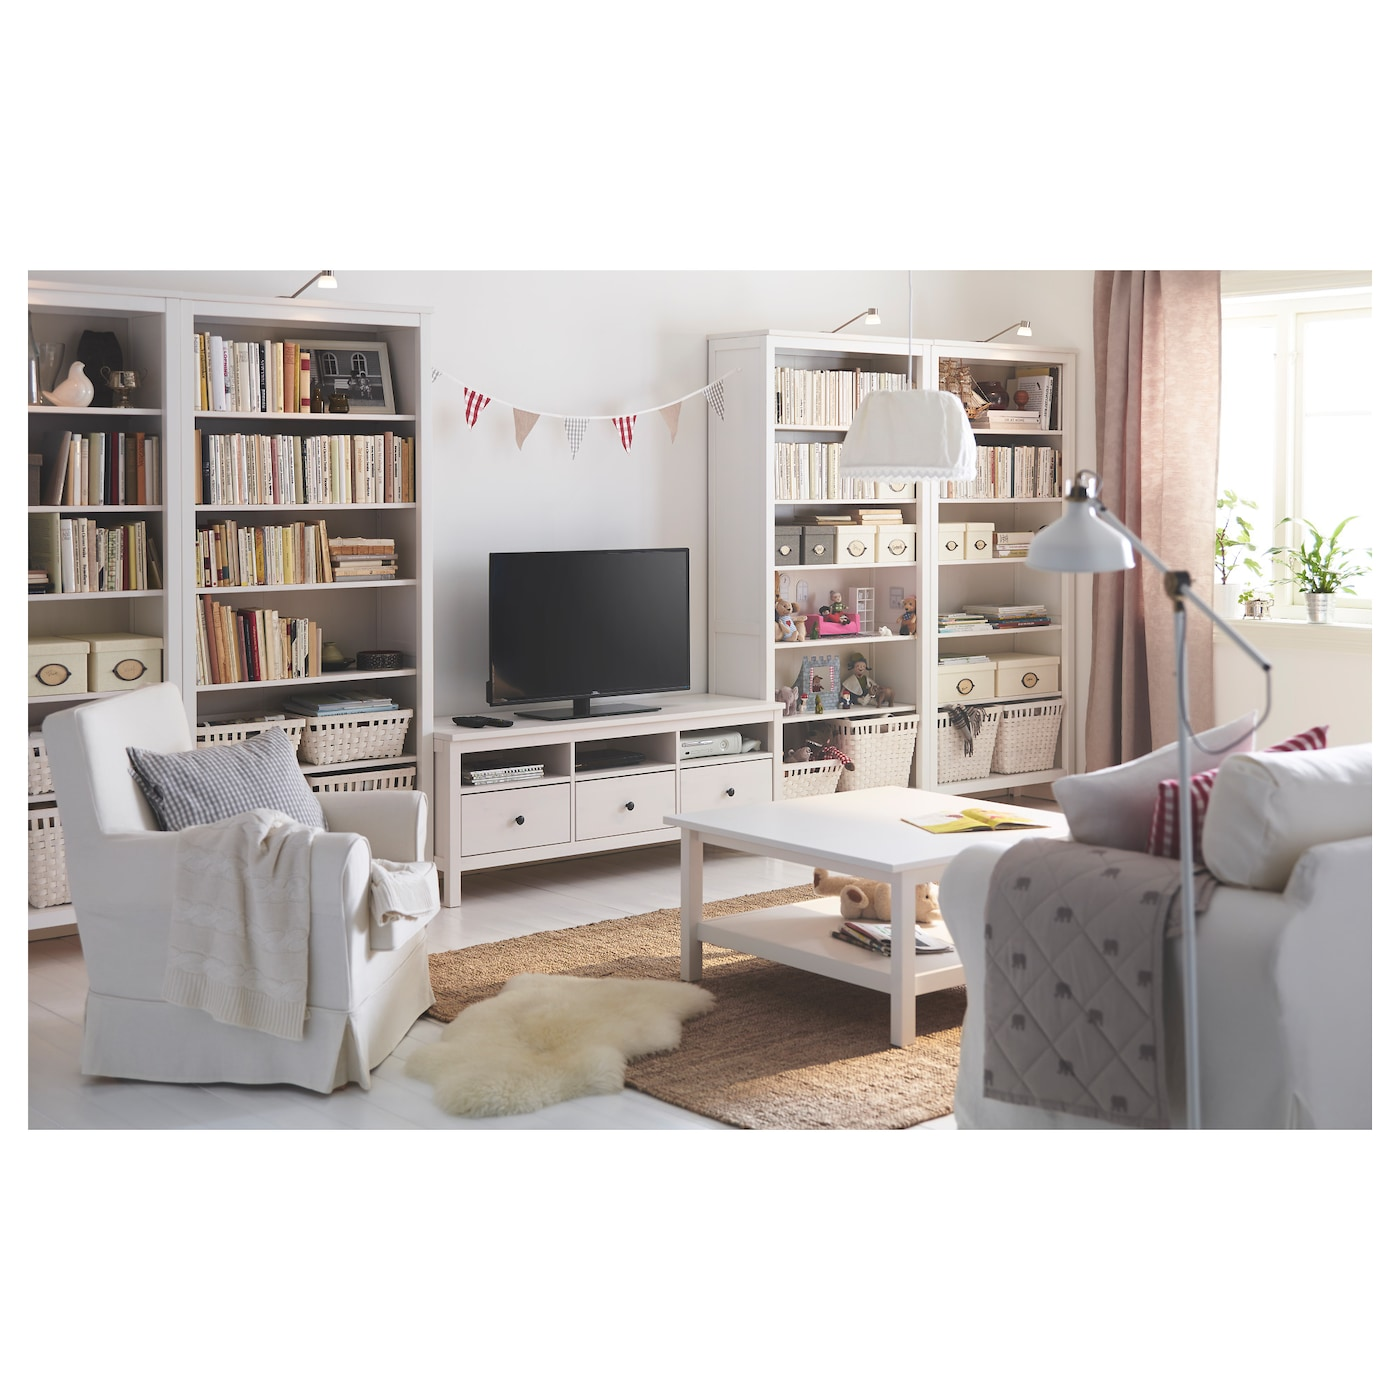 Hemnes tv bench white stain 148 x 47 x 57 cm ikea for Ikea comodino hemnes